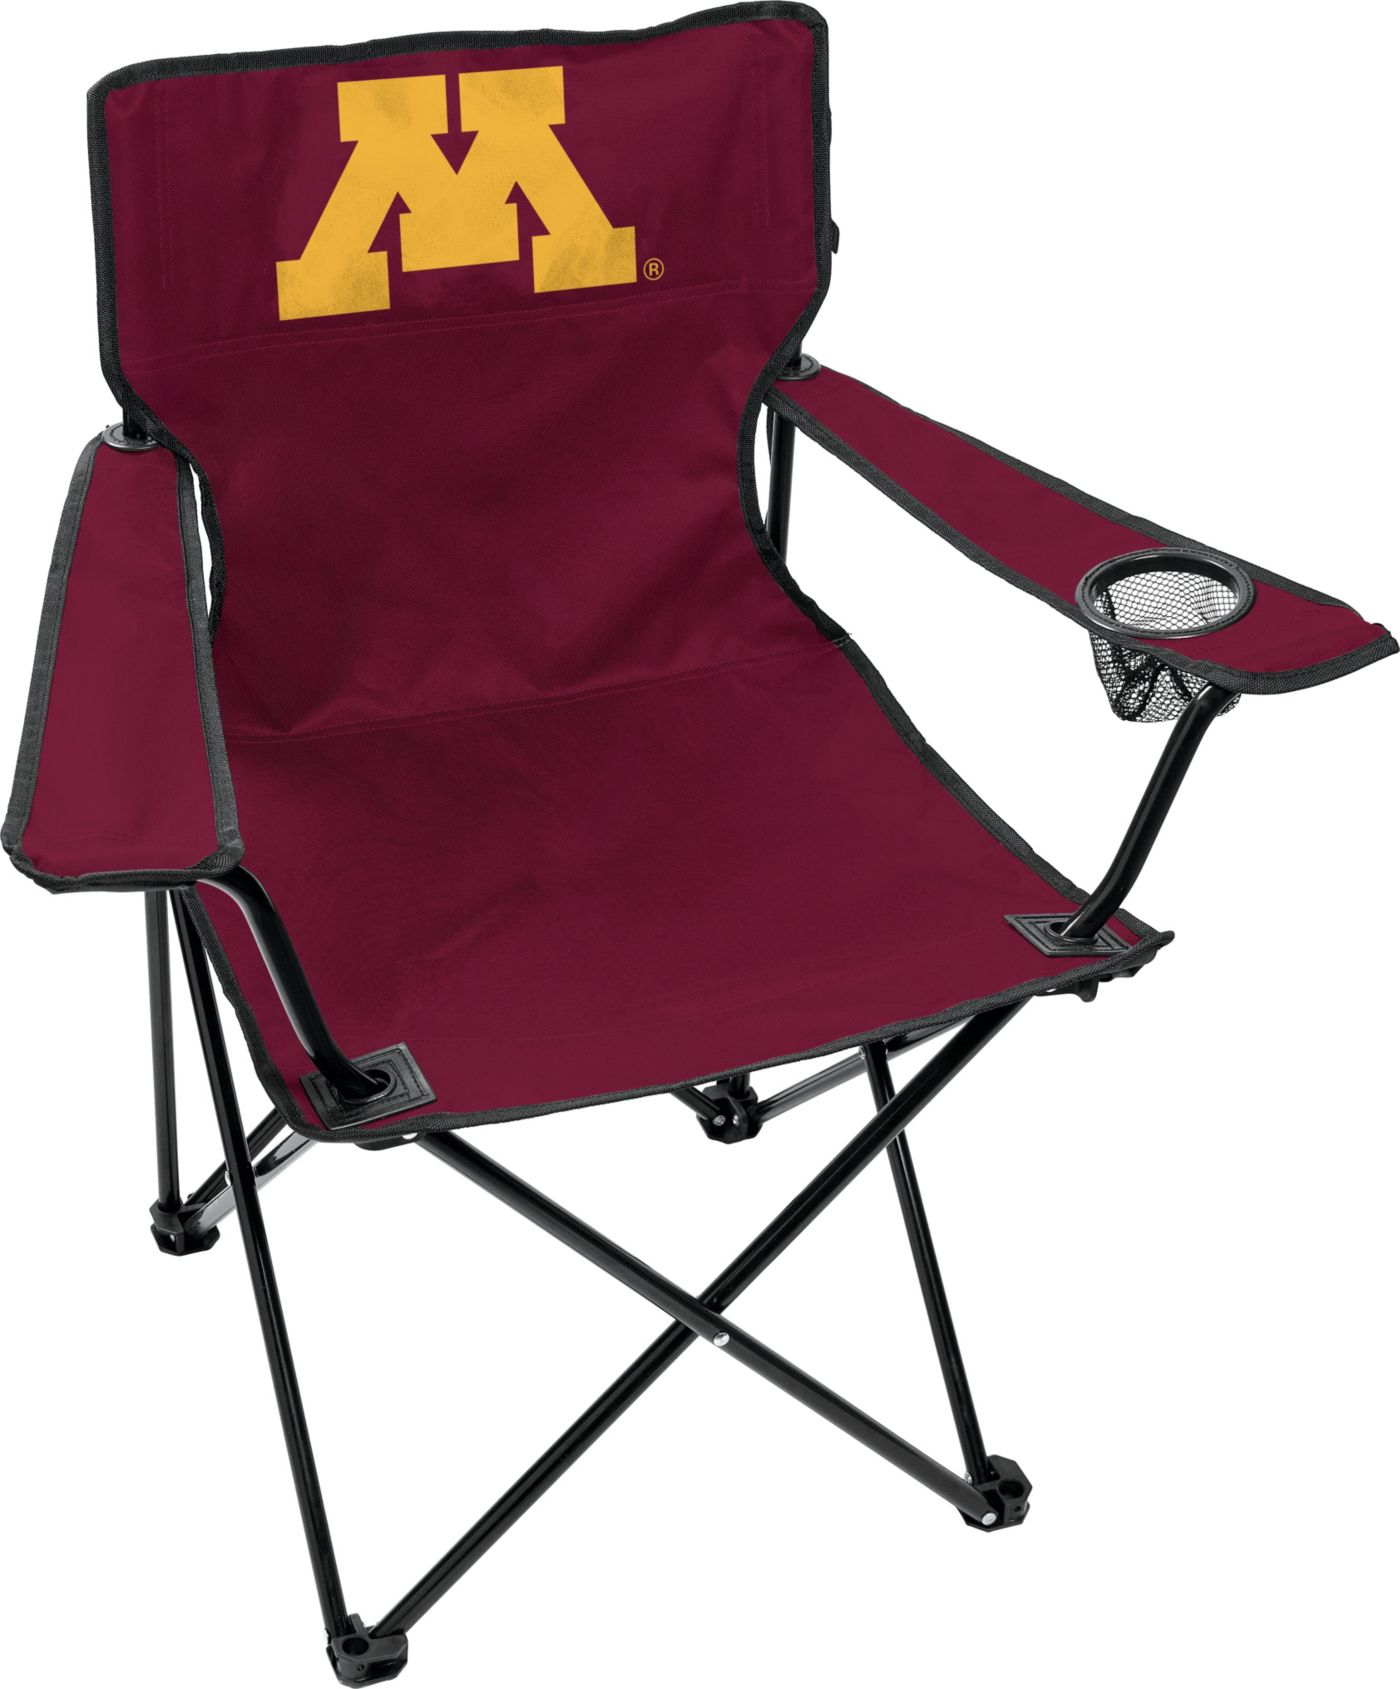 Rawlings Minnesota Golden Gophers Game Day Chair